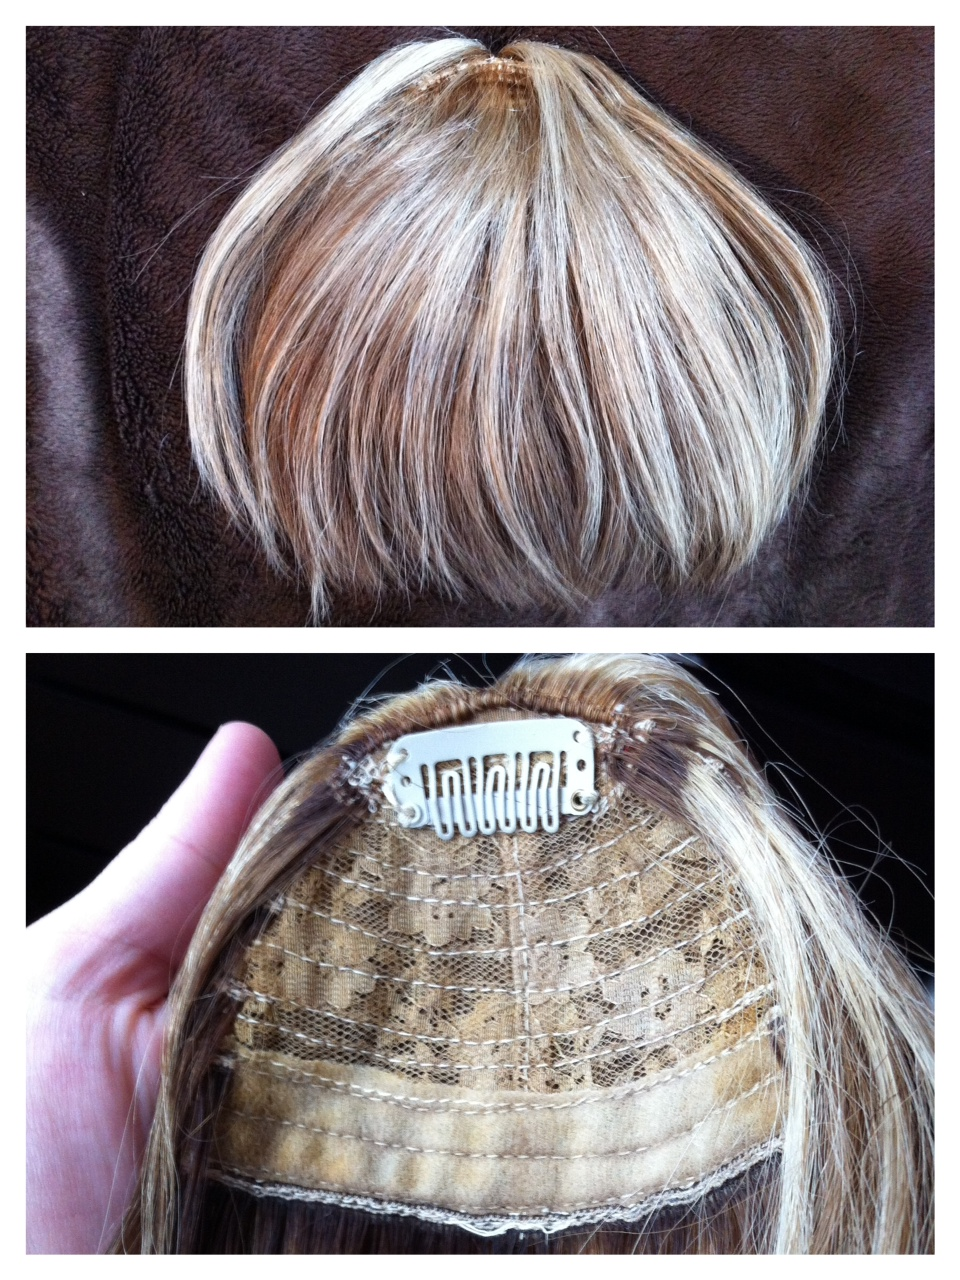 How To: Fringe for the Fickle - Tranny Bangs! | tryst n' shout